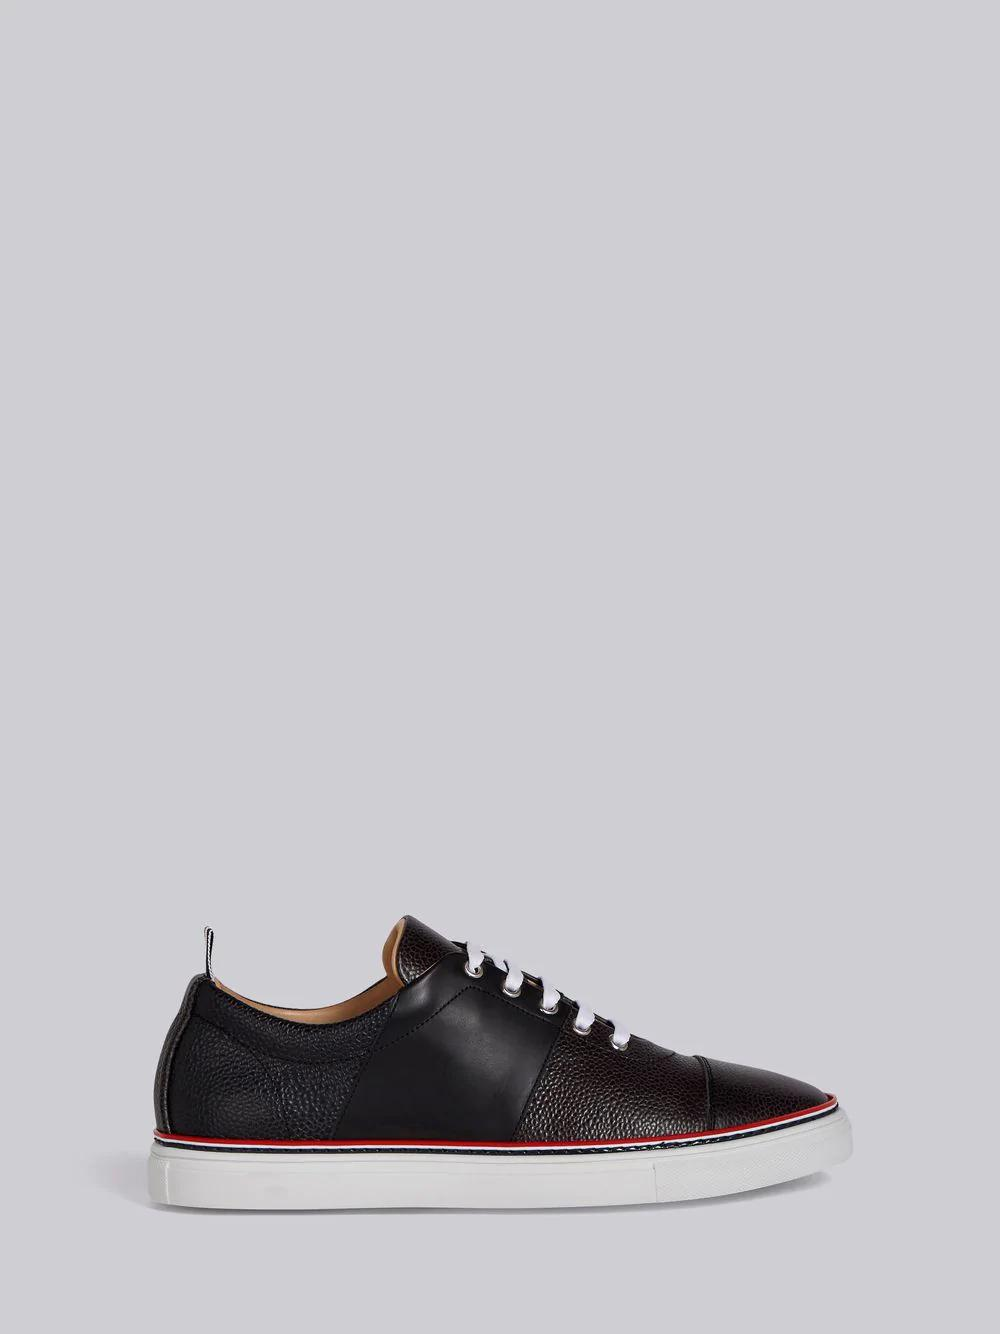 Thom Browne Color-Block Pebble Grain Trainer - Grey